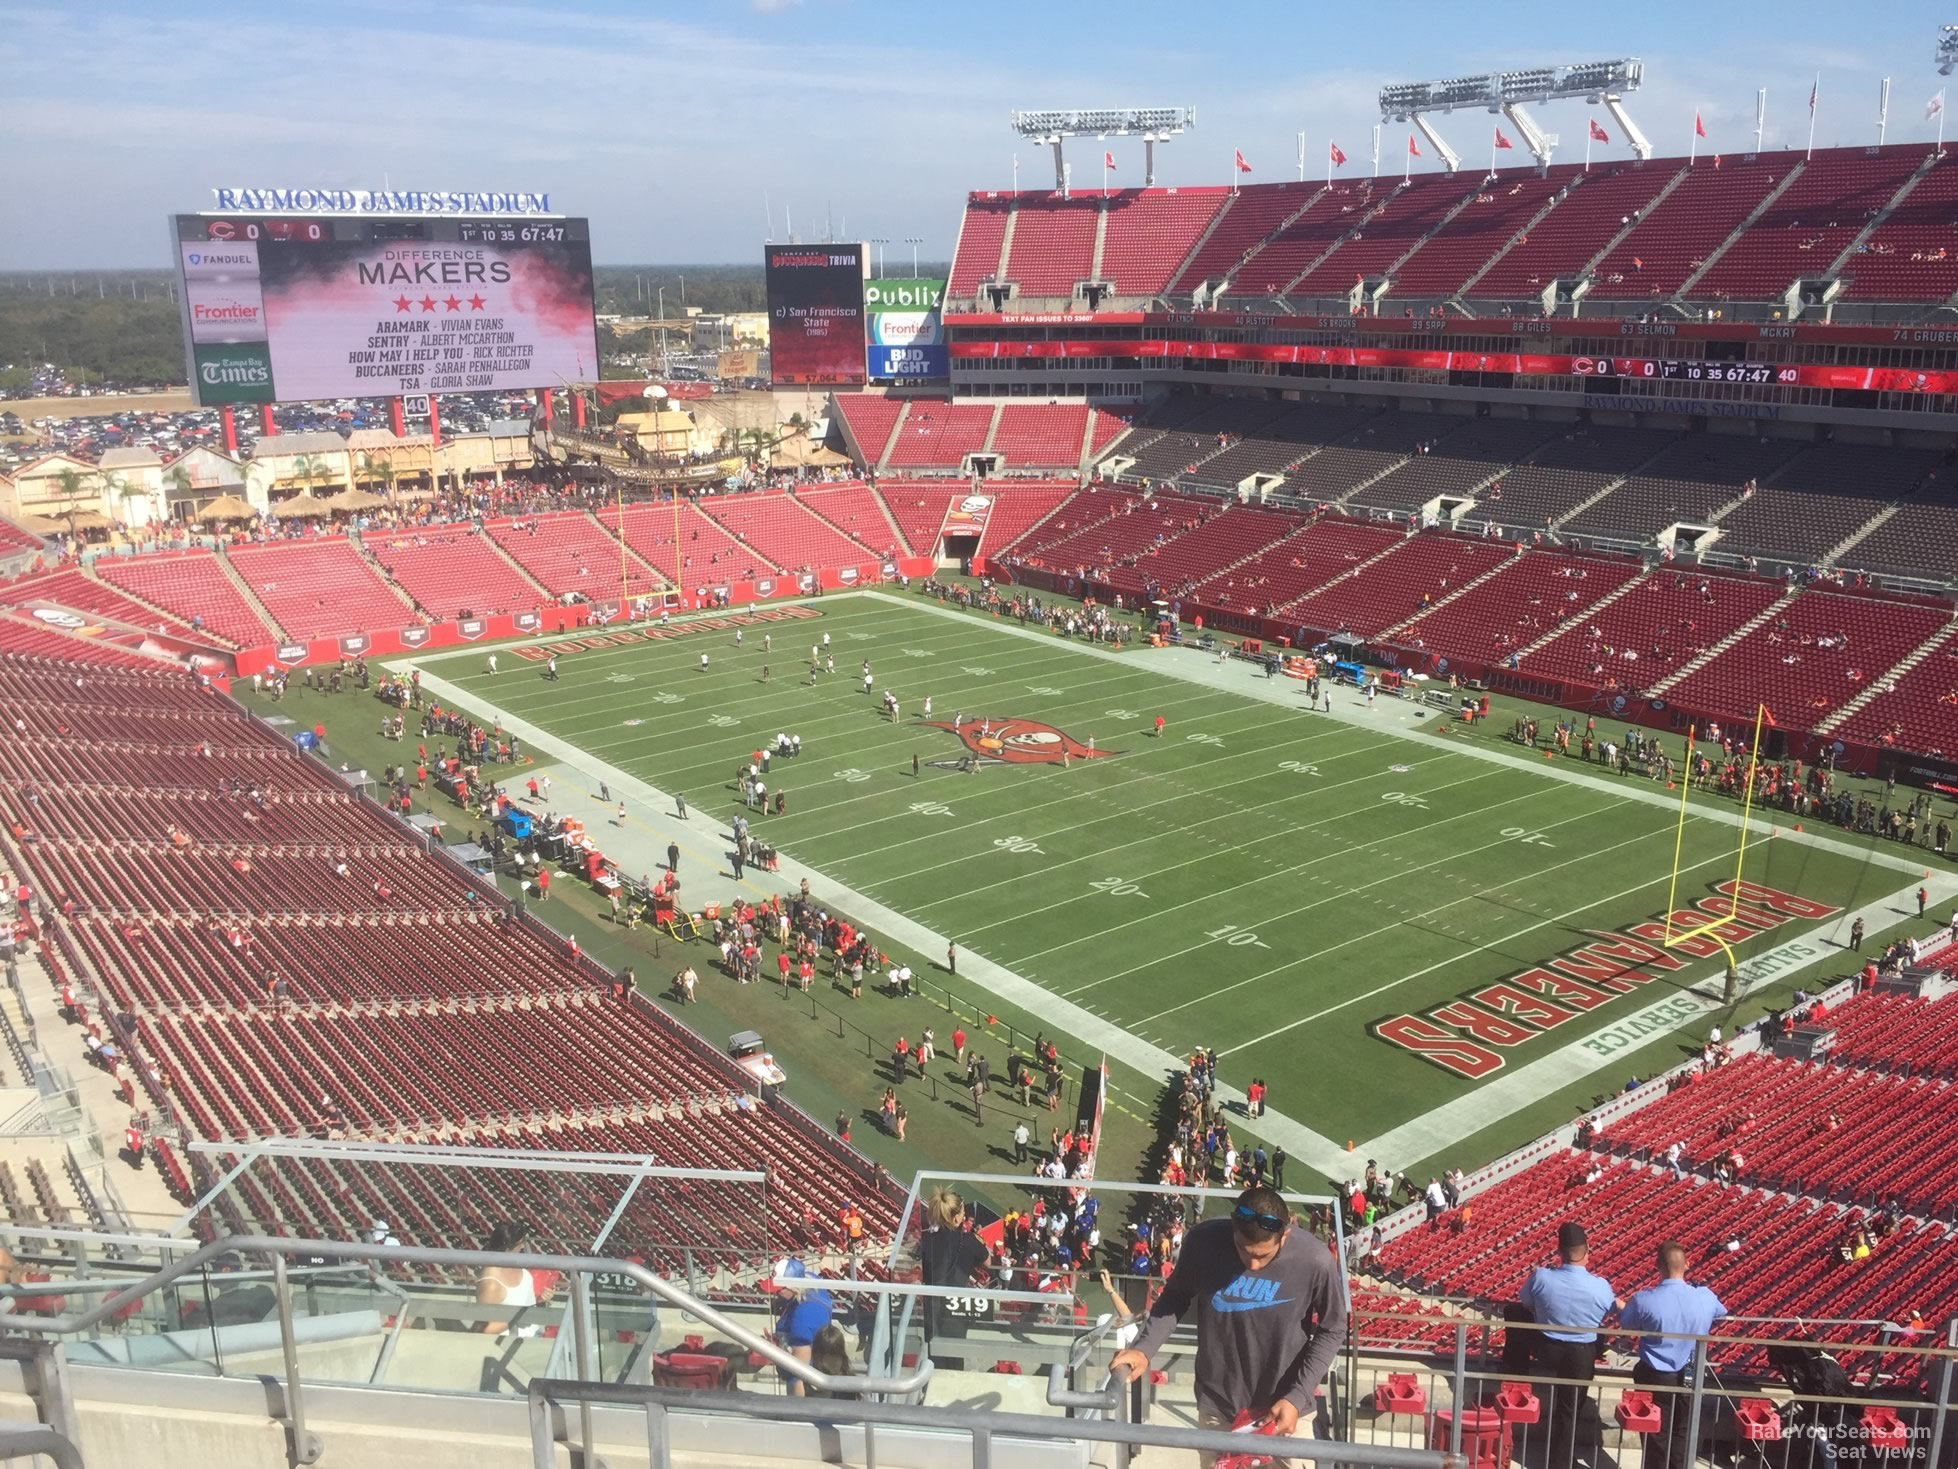 Seat View for Raymond James Stadium Section 319, Row K